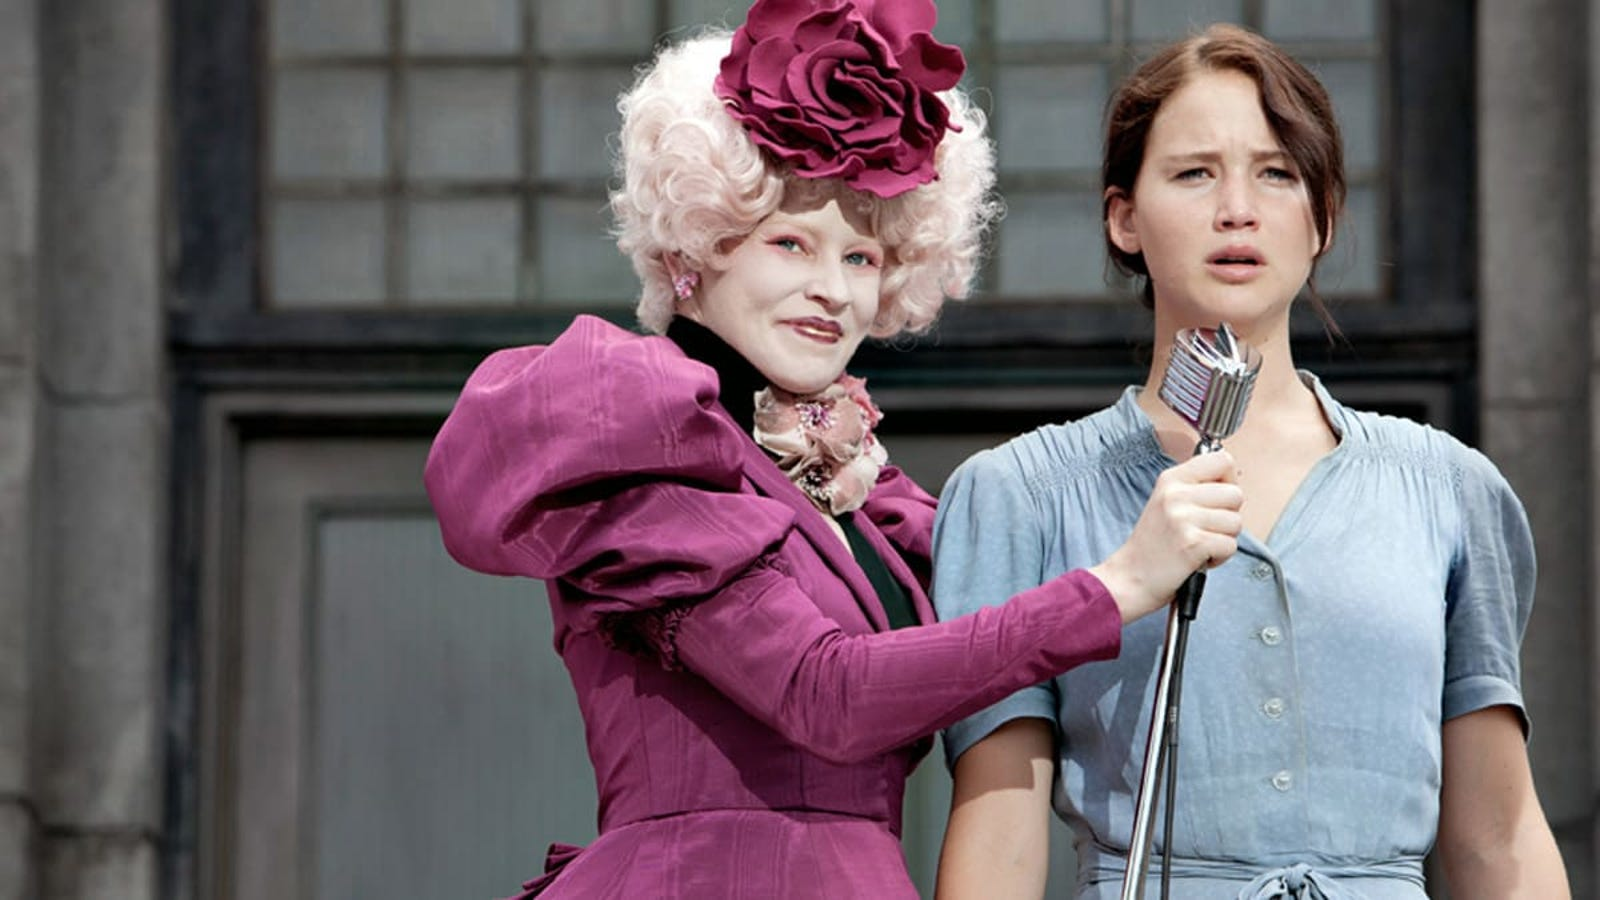 The Hunger Games Is Getting a Prequel Novel, Set During the 'Dark Days' of Panem